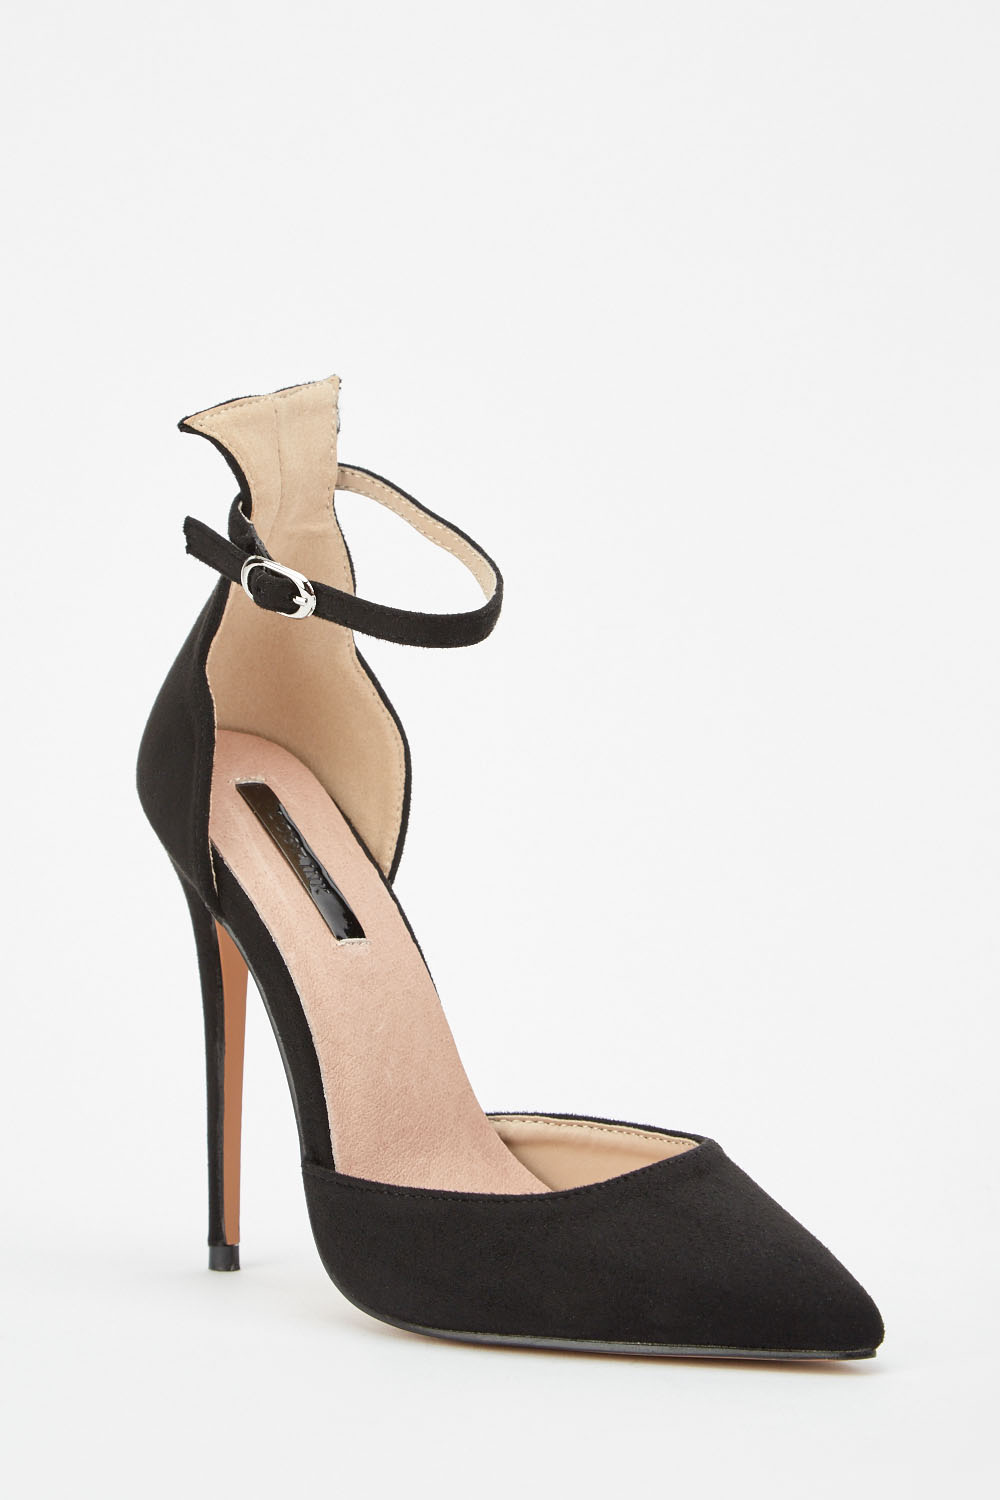 9f8a52917 Lost Ink Ankle Strap Stiletto Courts - Black - Just £5